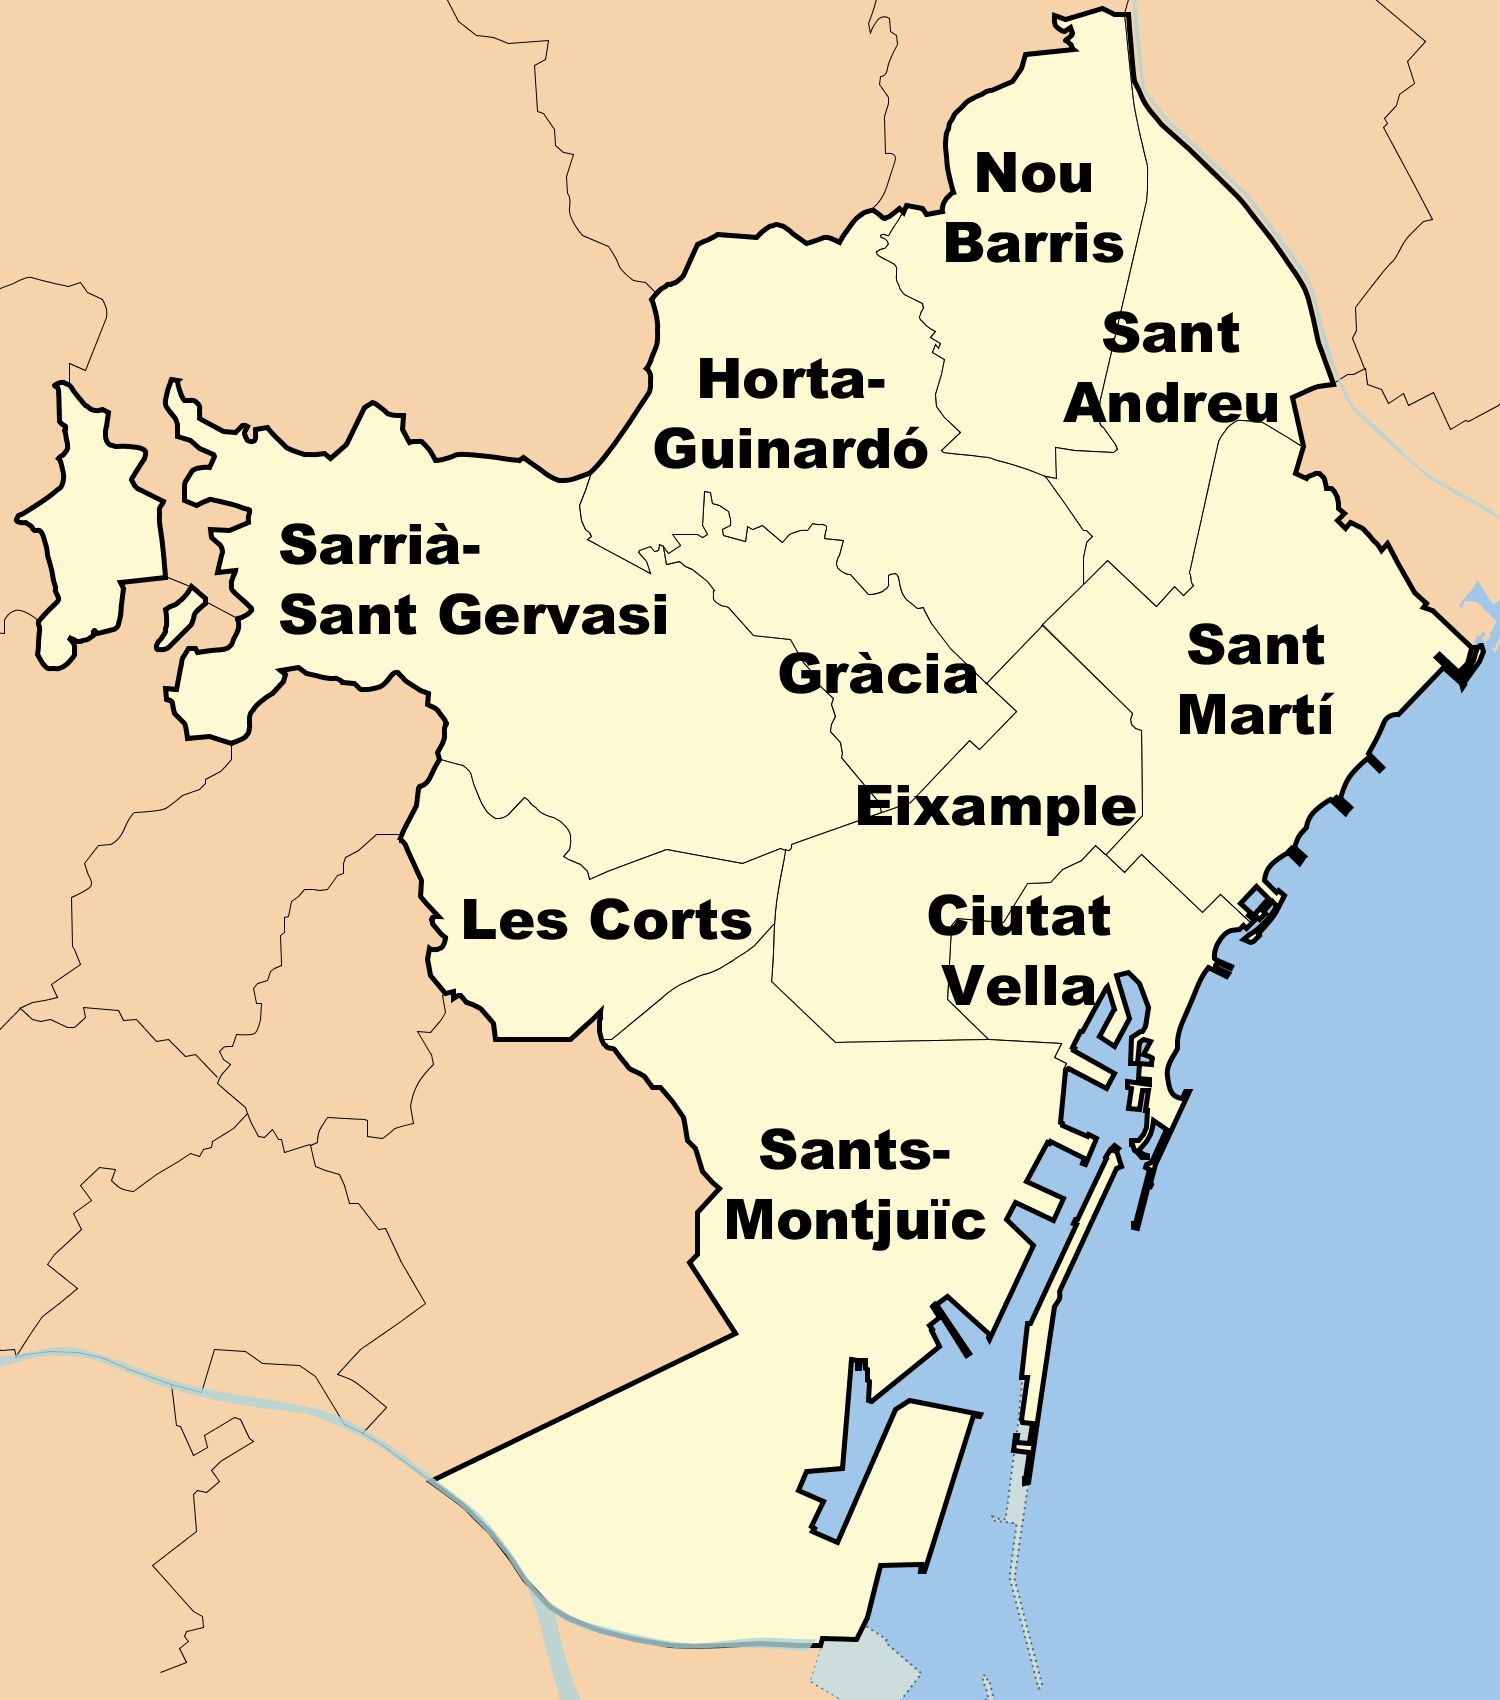 Districts of Barcelona 2008